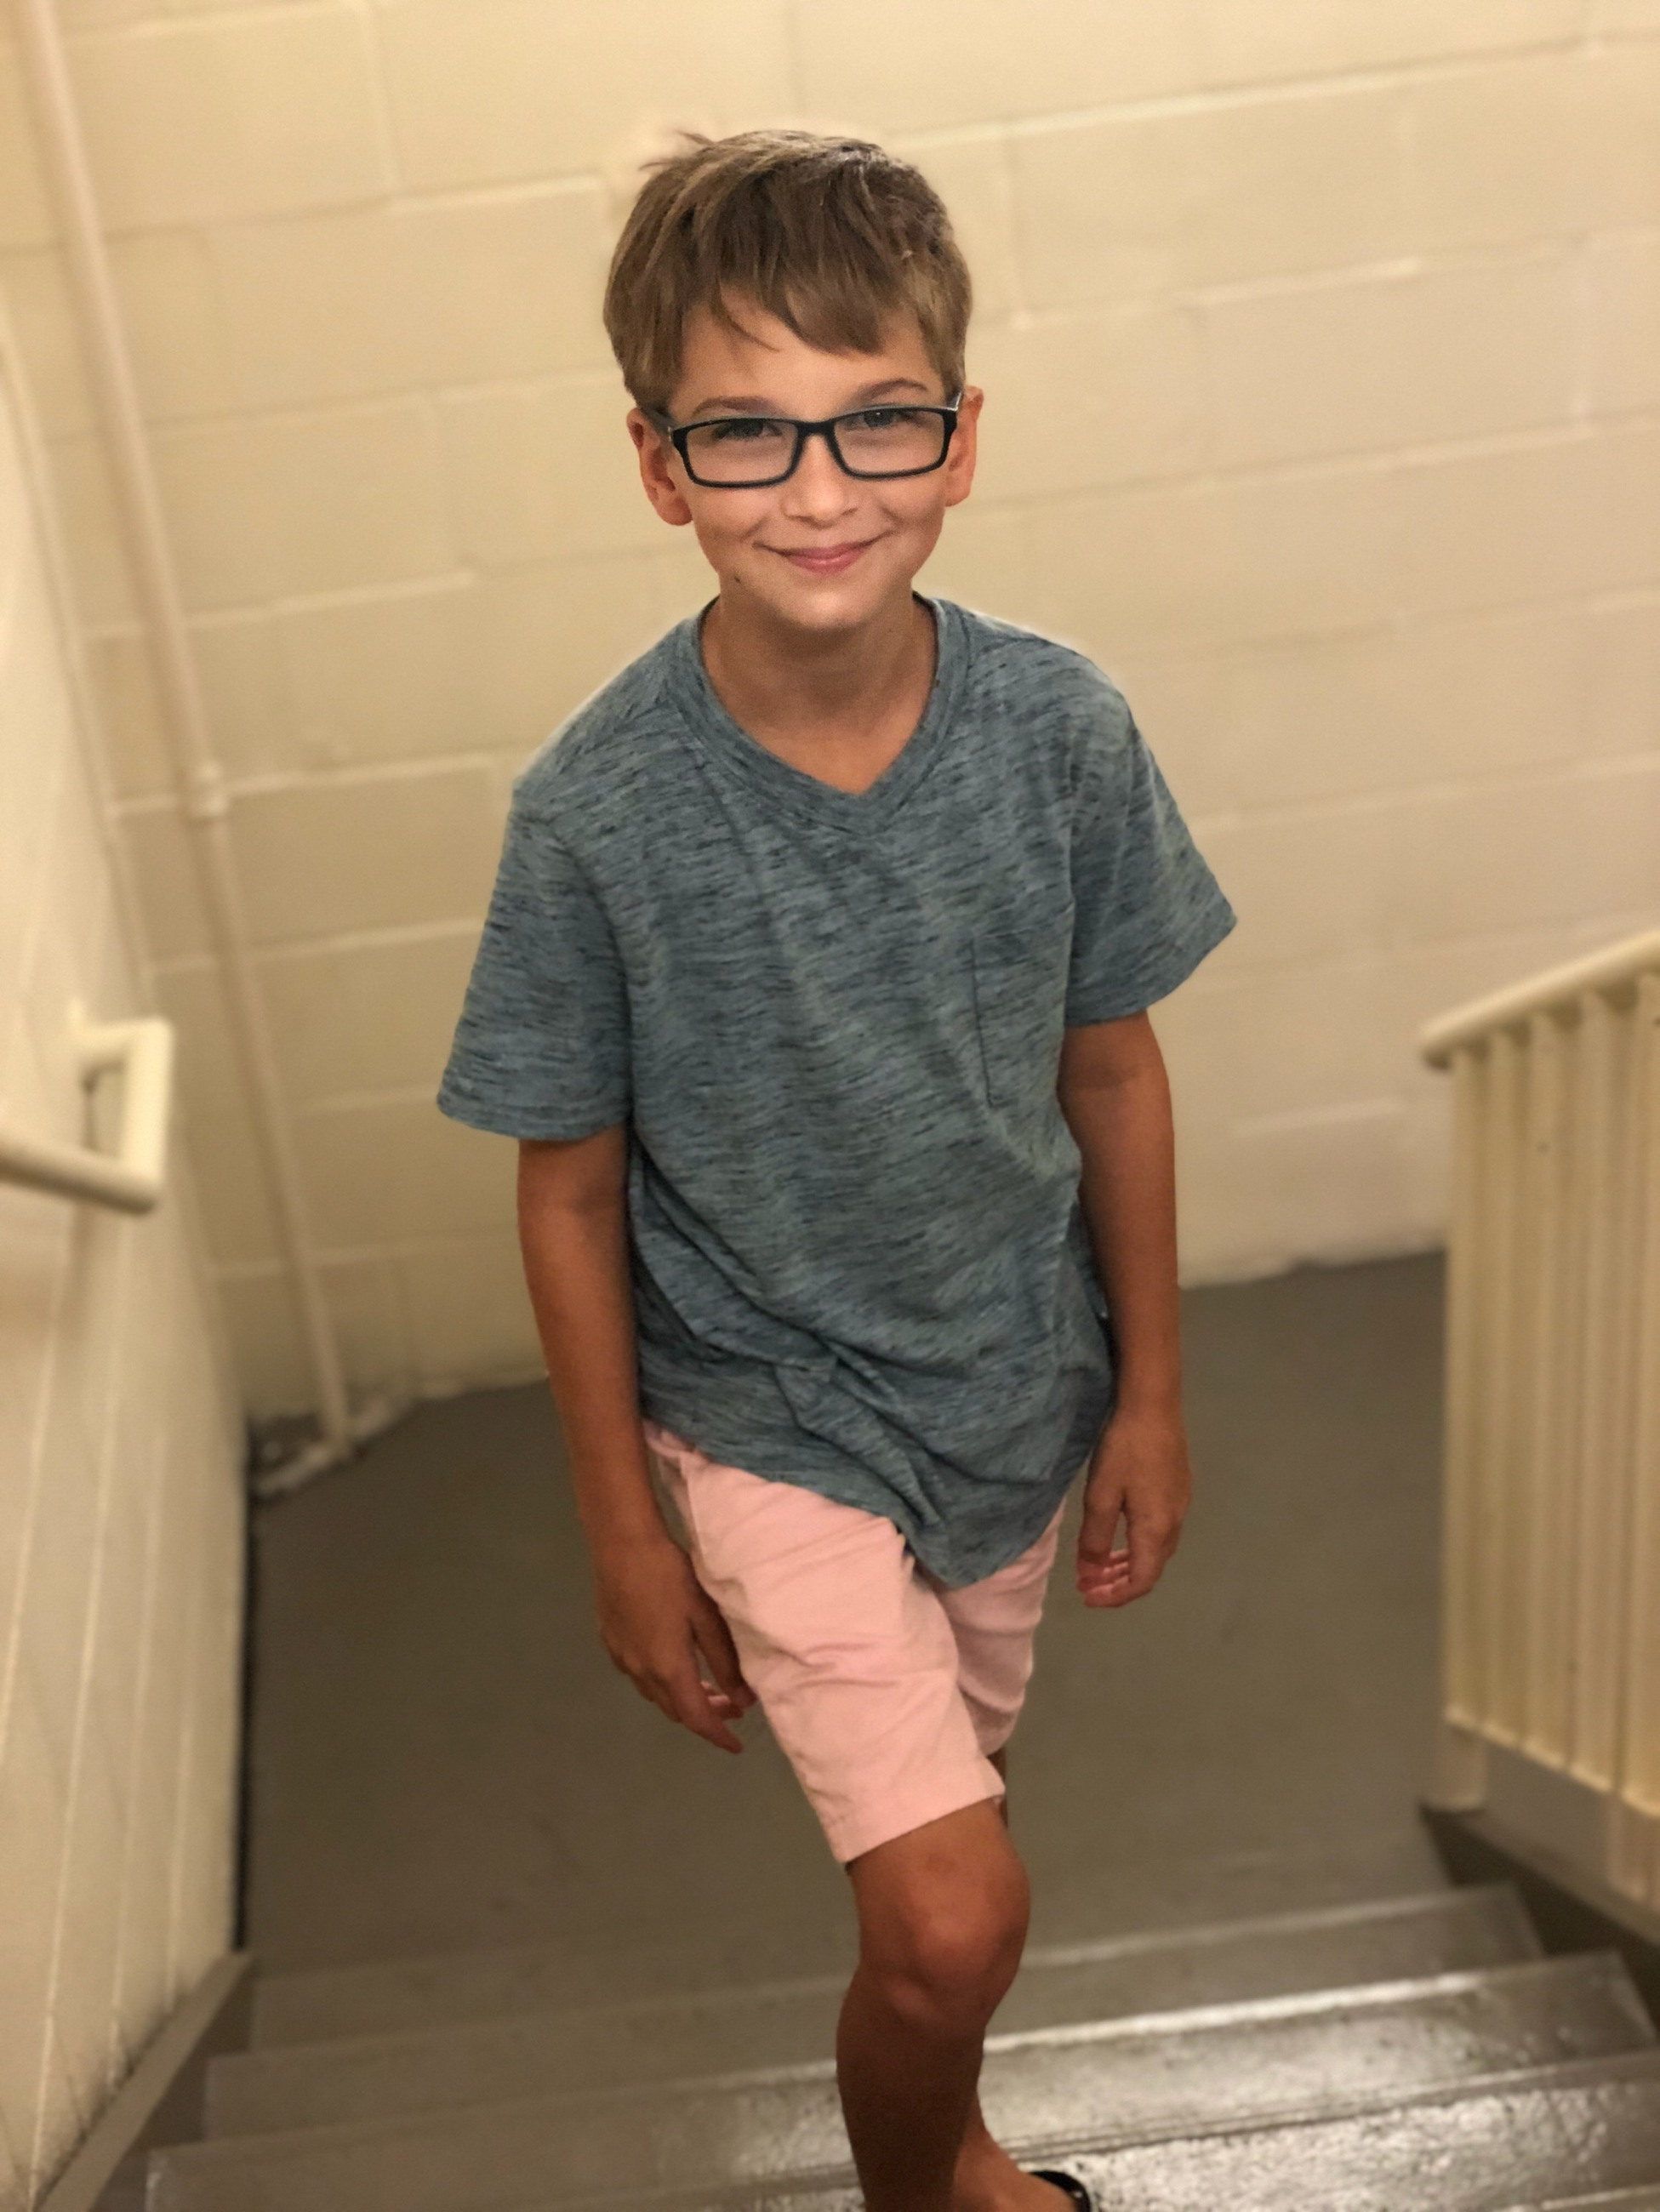 pediatric patient wearing glasses smiling standing on stairs